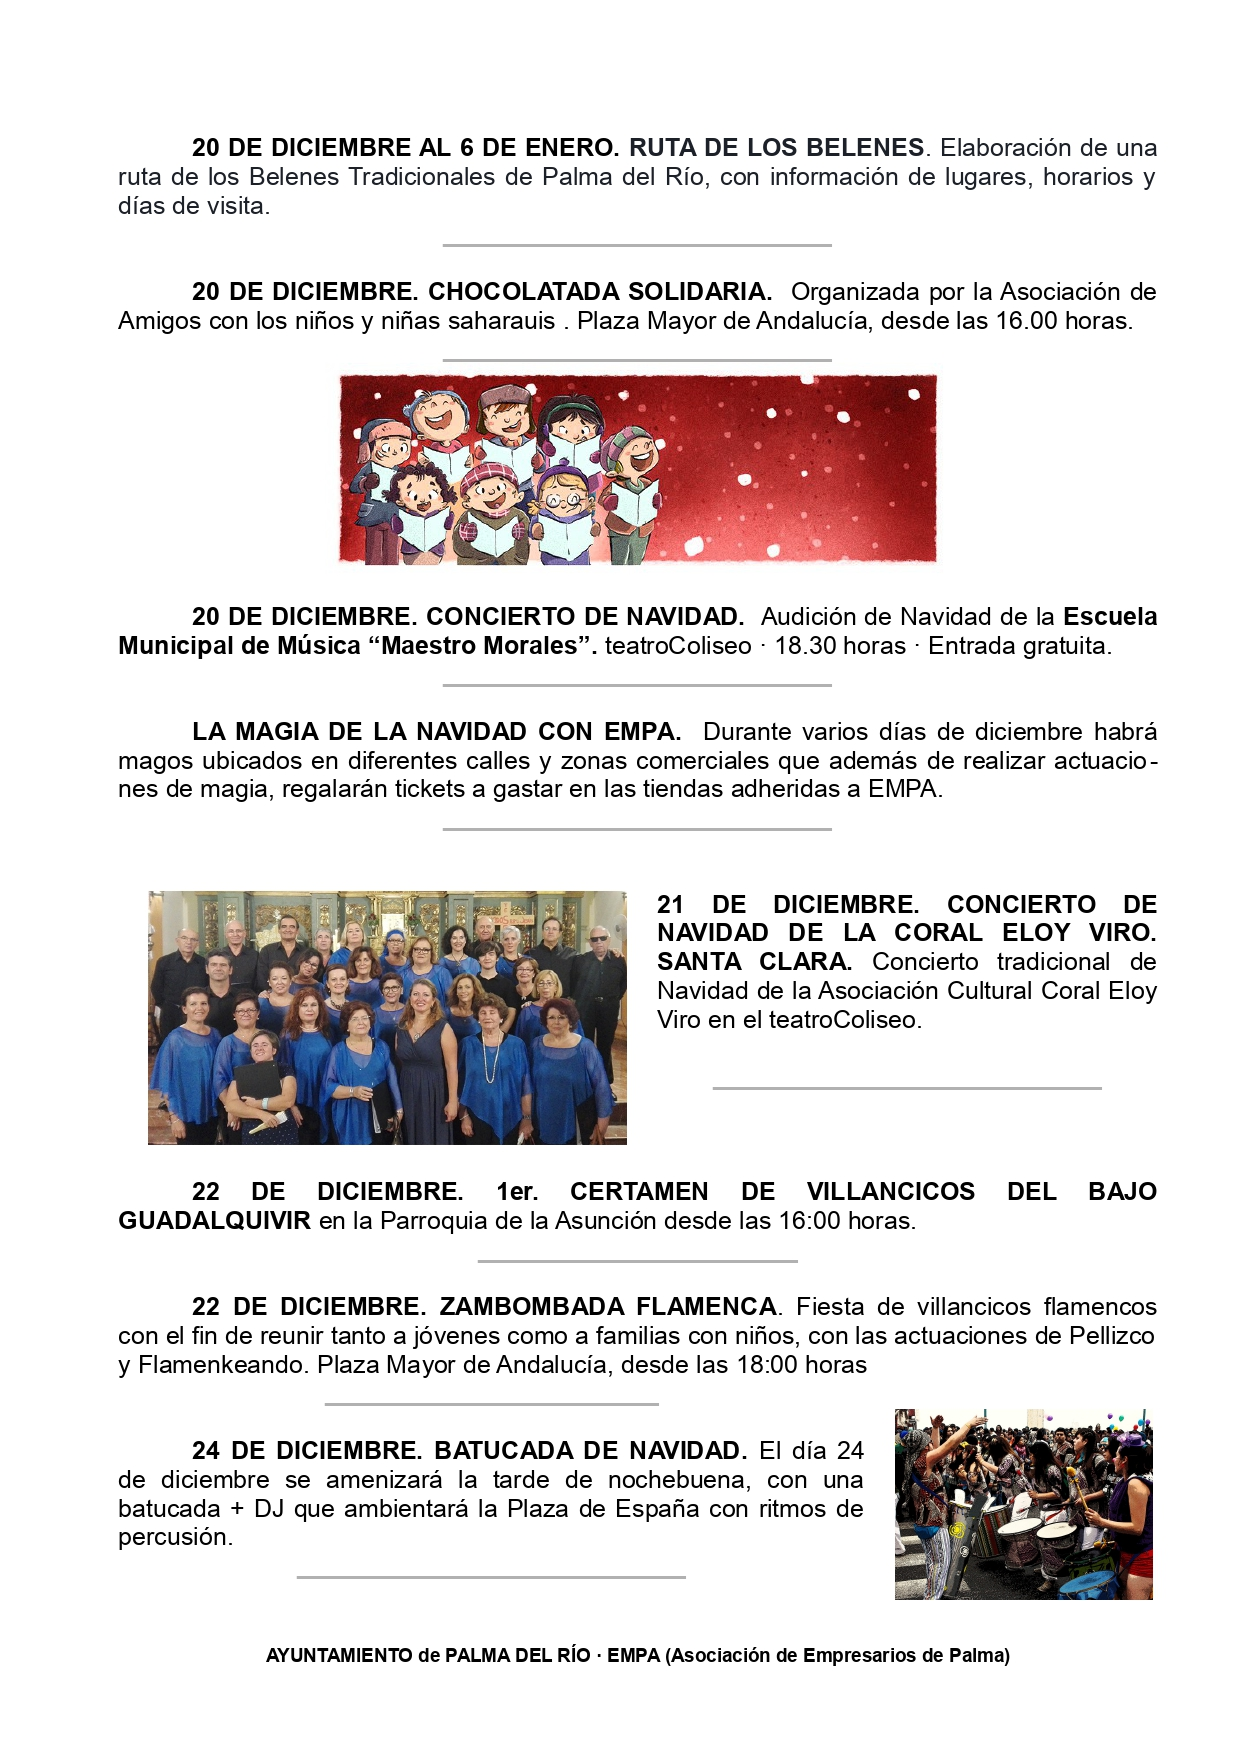 https://www.palmadelrio.es/sites/default/files/5.regala_palma_en_navidad_2019_20-5_page-00011.jpg